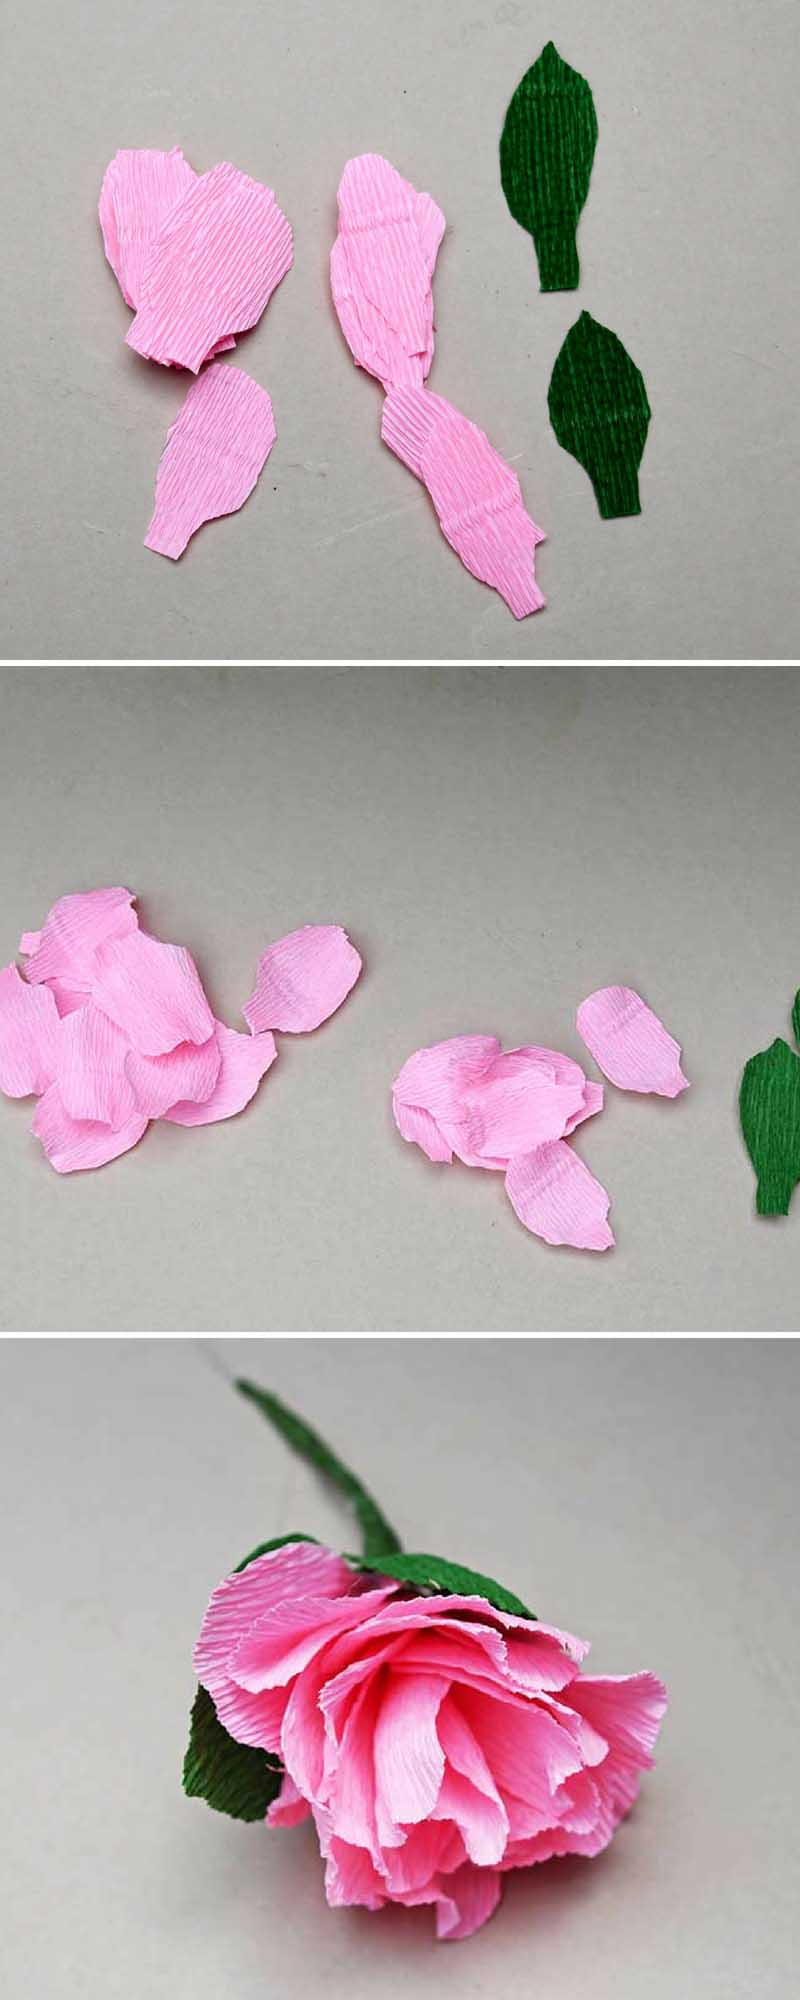 Making pink peonies for paper flower wall decoration